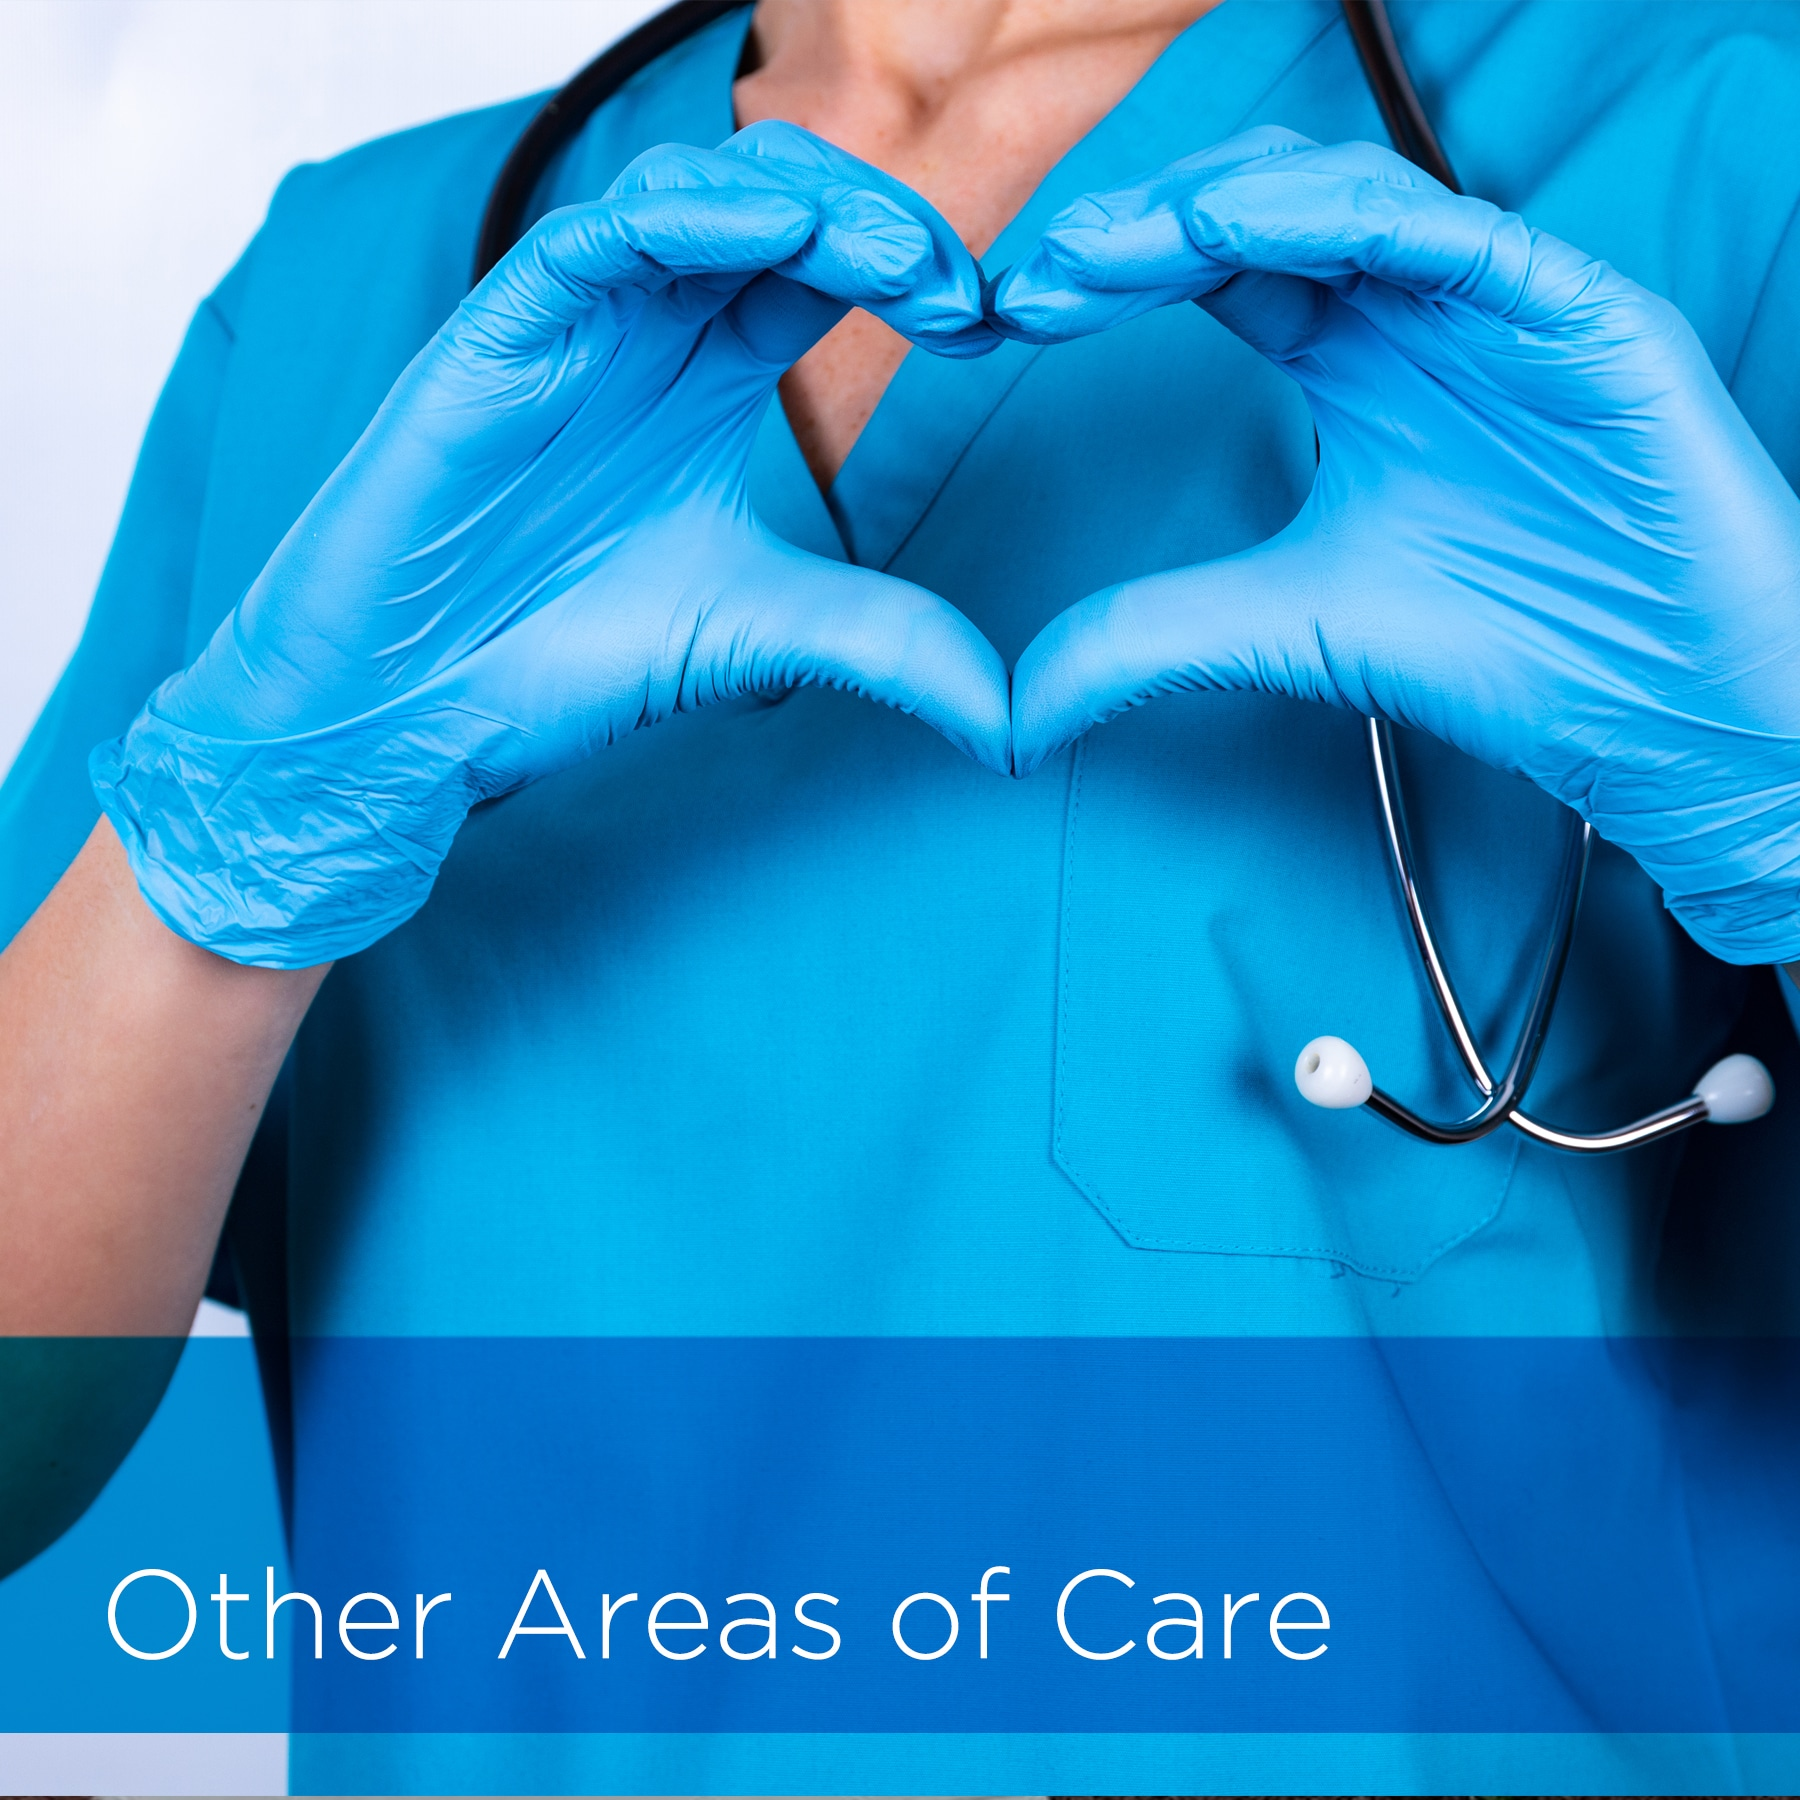 Other Areas of Care